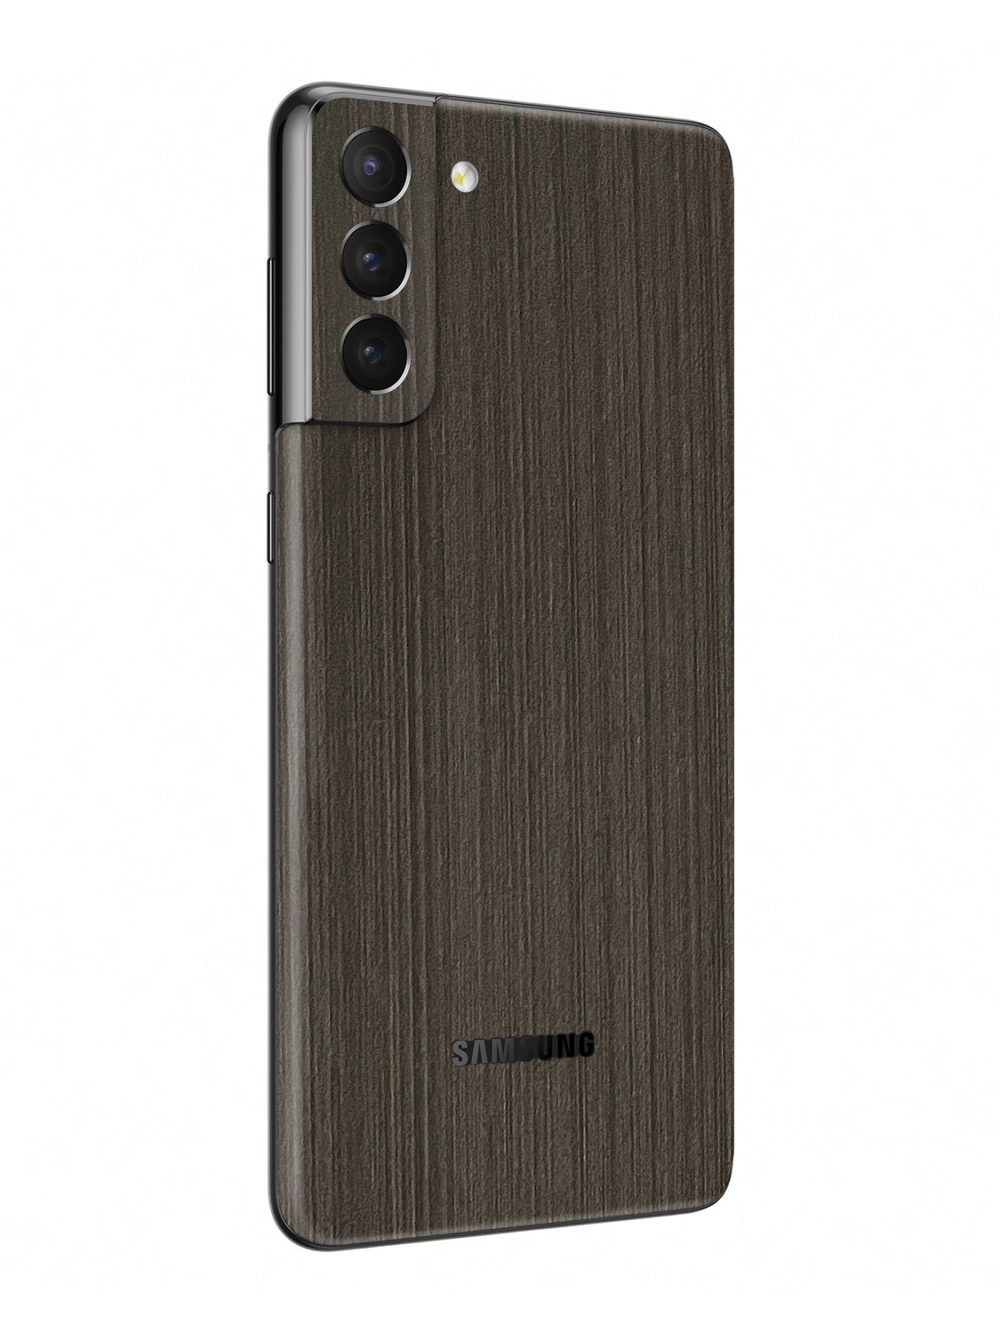 Brushed Dark Bronze Metallic skin for Samsung Galaxy S21